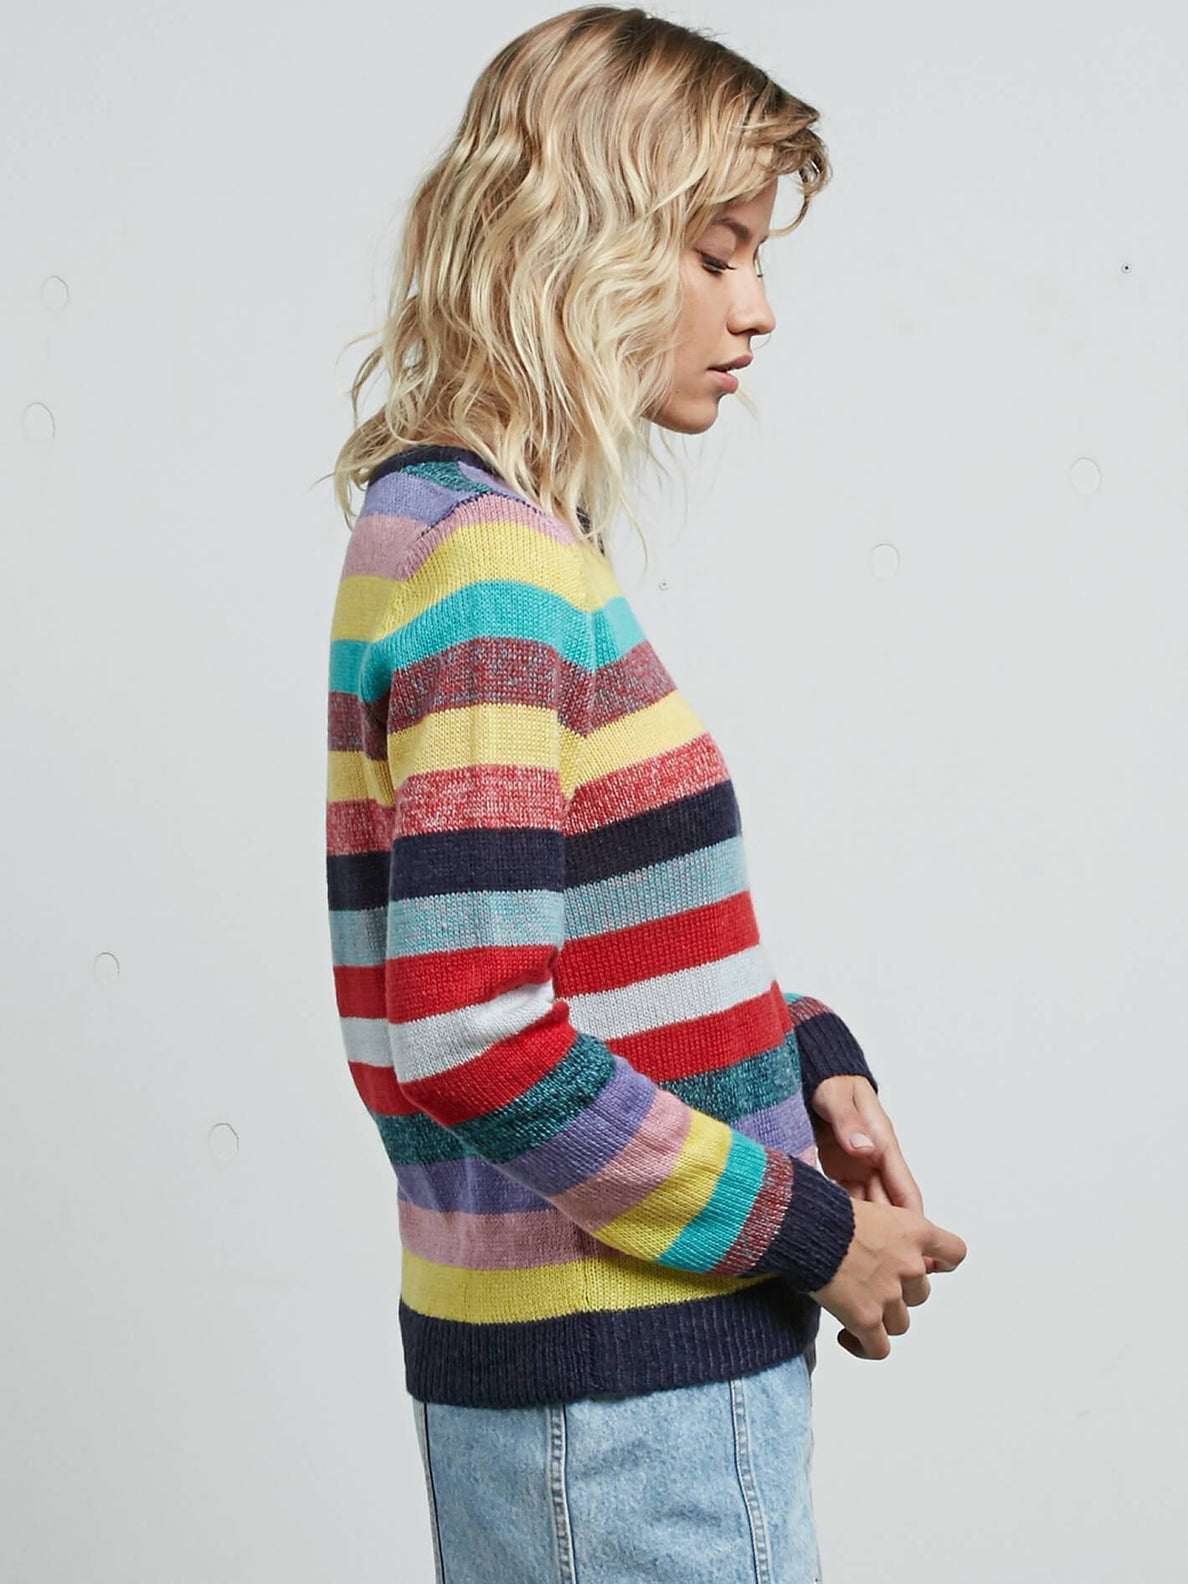 Pullover Georgia May Jagger Core - Multi